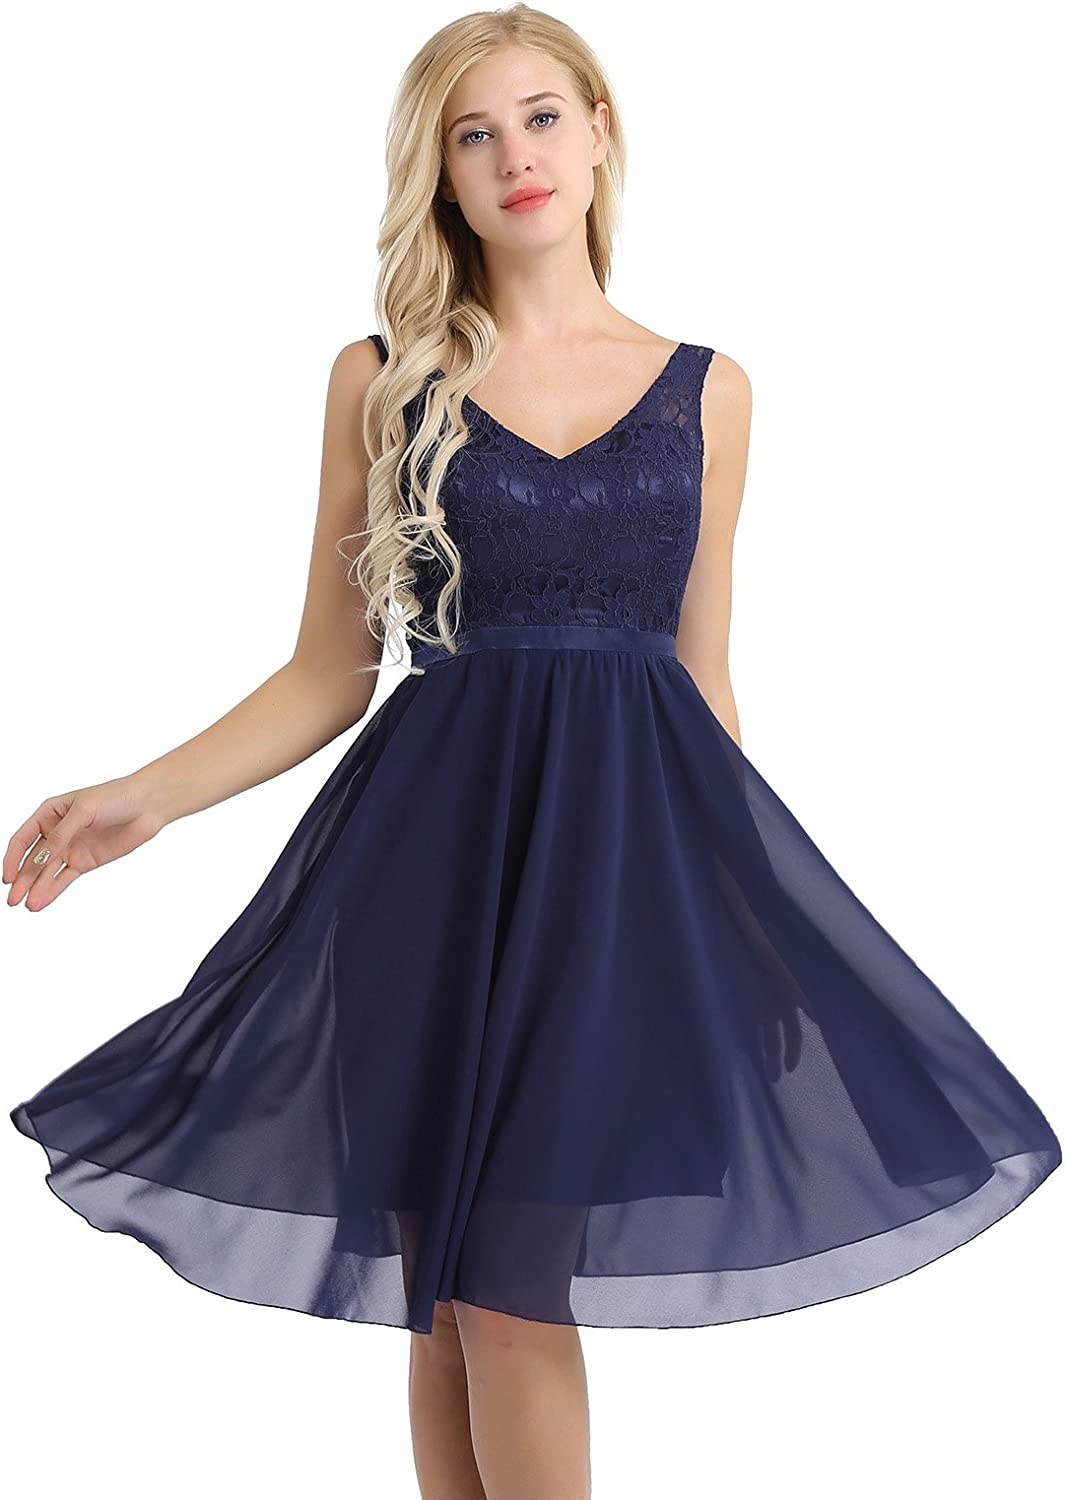 ACSUSS Women's V-Neck Bridesmaid Dress Short Evening Party Gown Lace Bodice